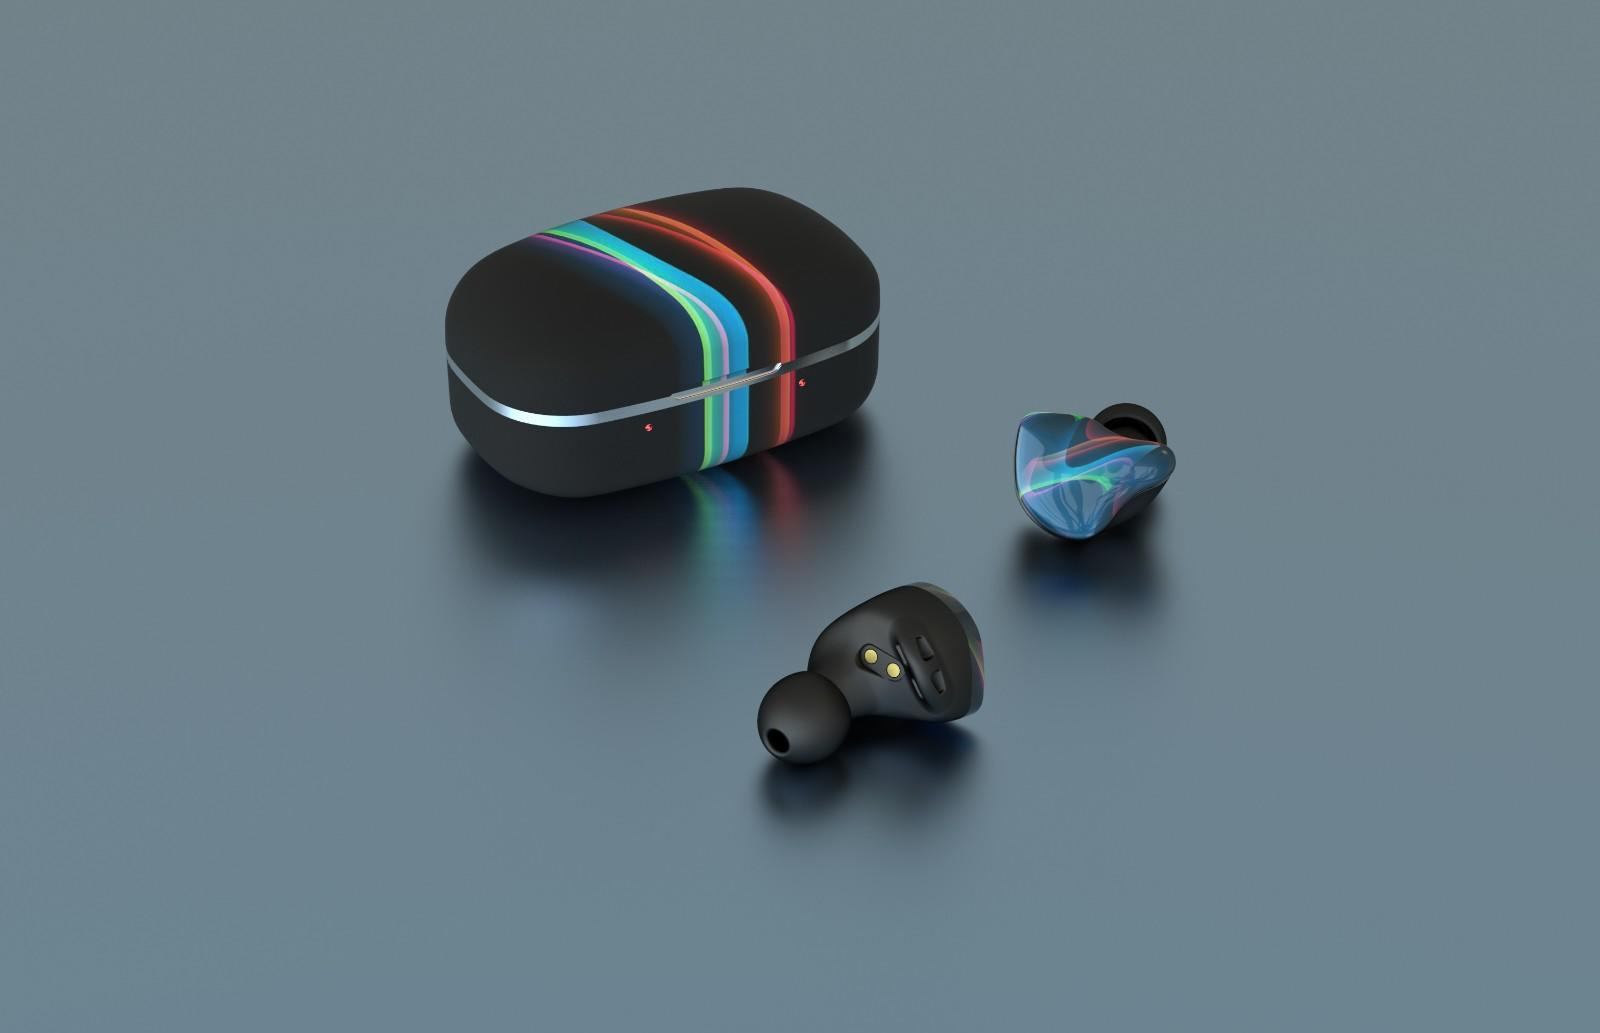 waterproof earbuds with detachable cable with three dimensional printing for sale-1